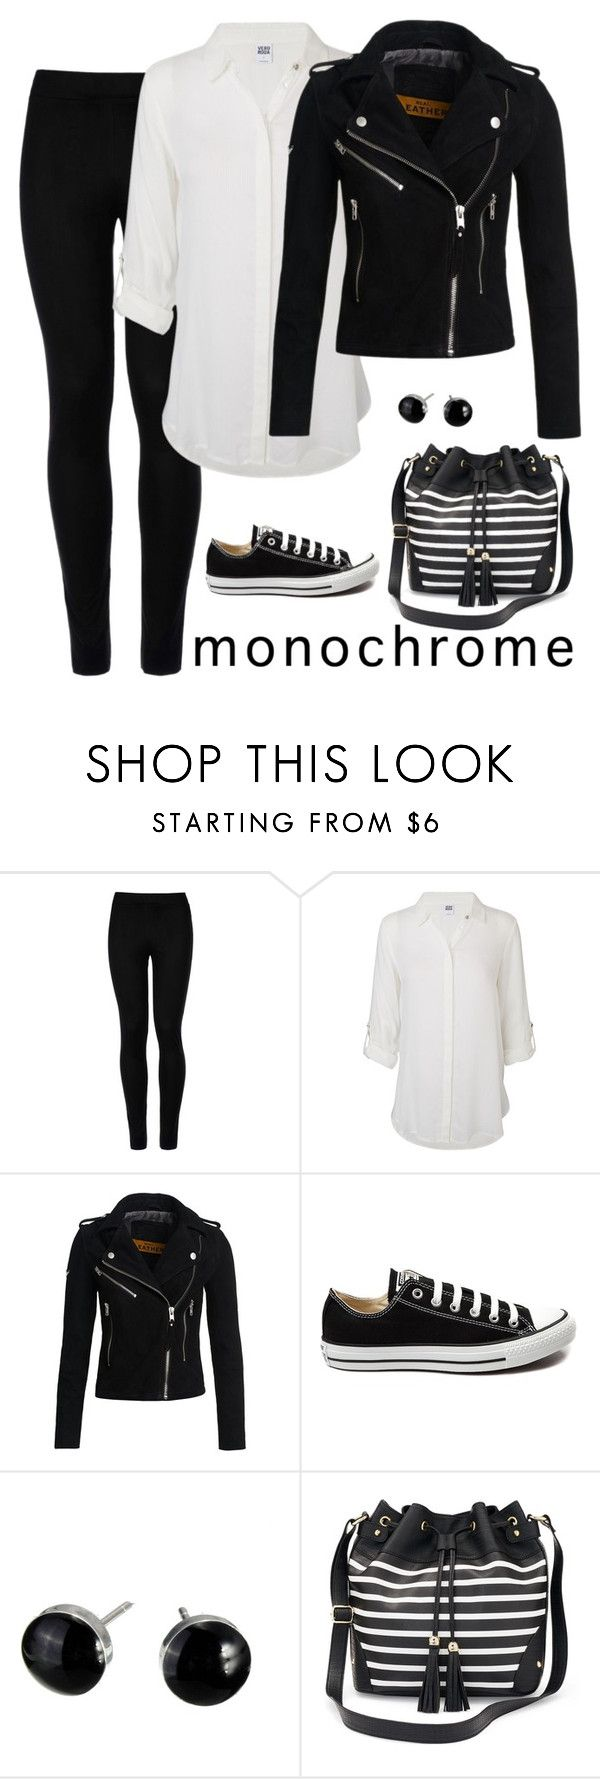 """""""Monochrome"""" by mrseclipse ❤ liked on Polyvore featuring Wolford, Vero Moda, Superdry, Converse, Apt. 9, monochrome and Leggings"""